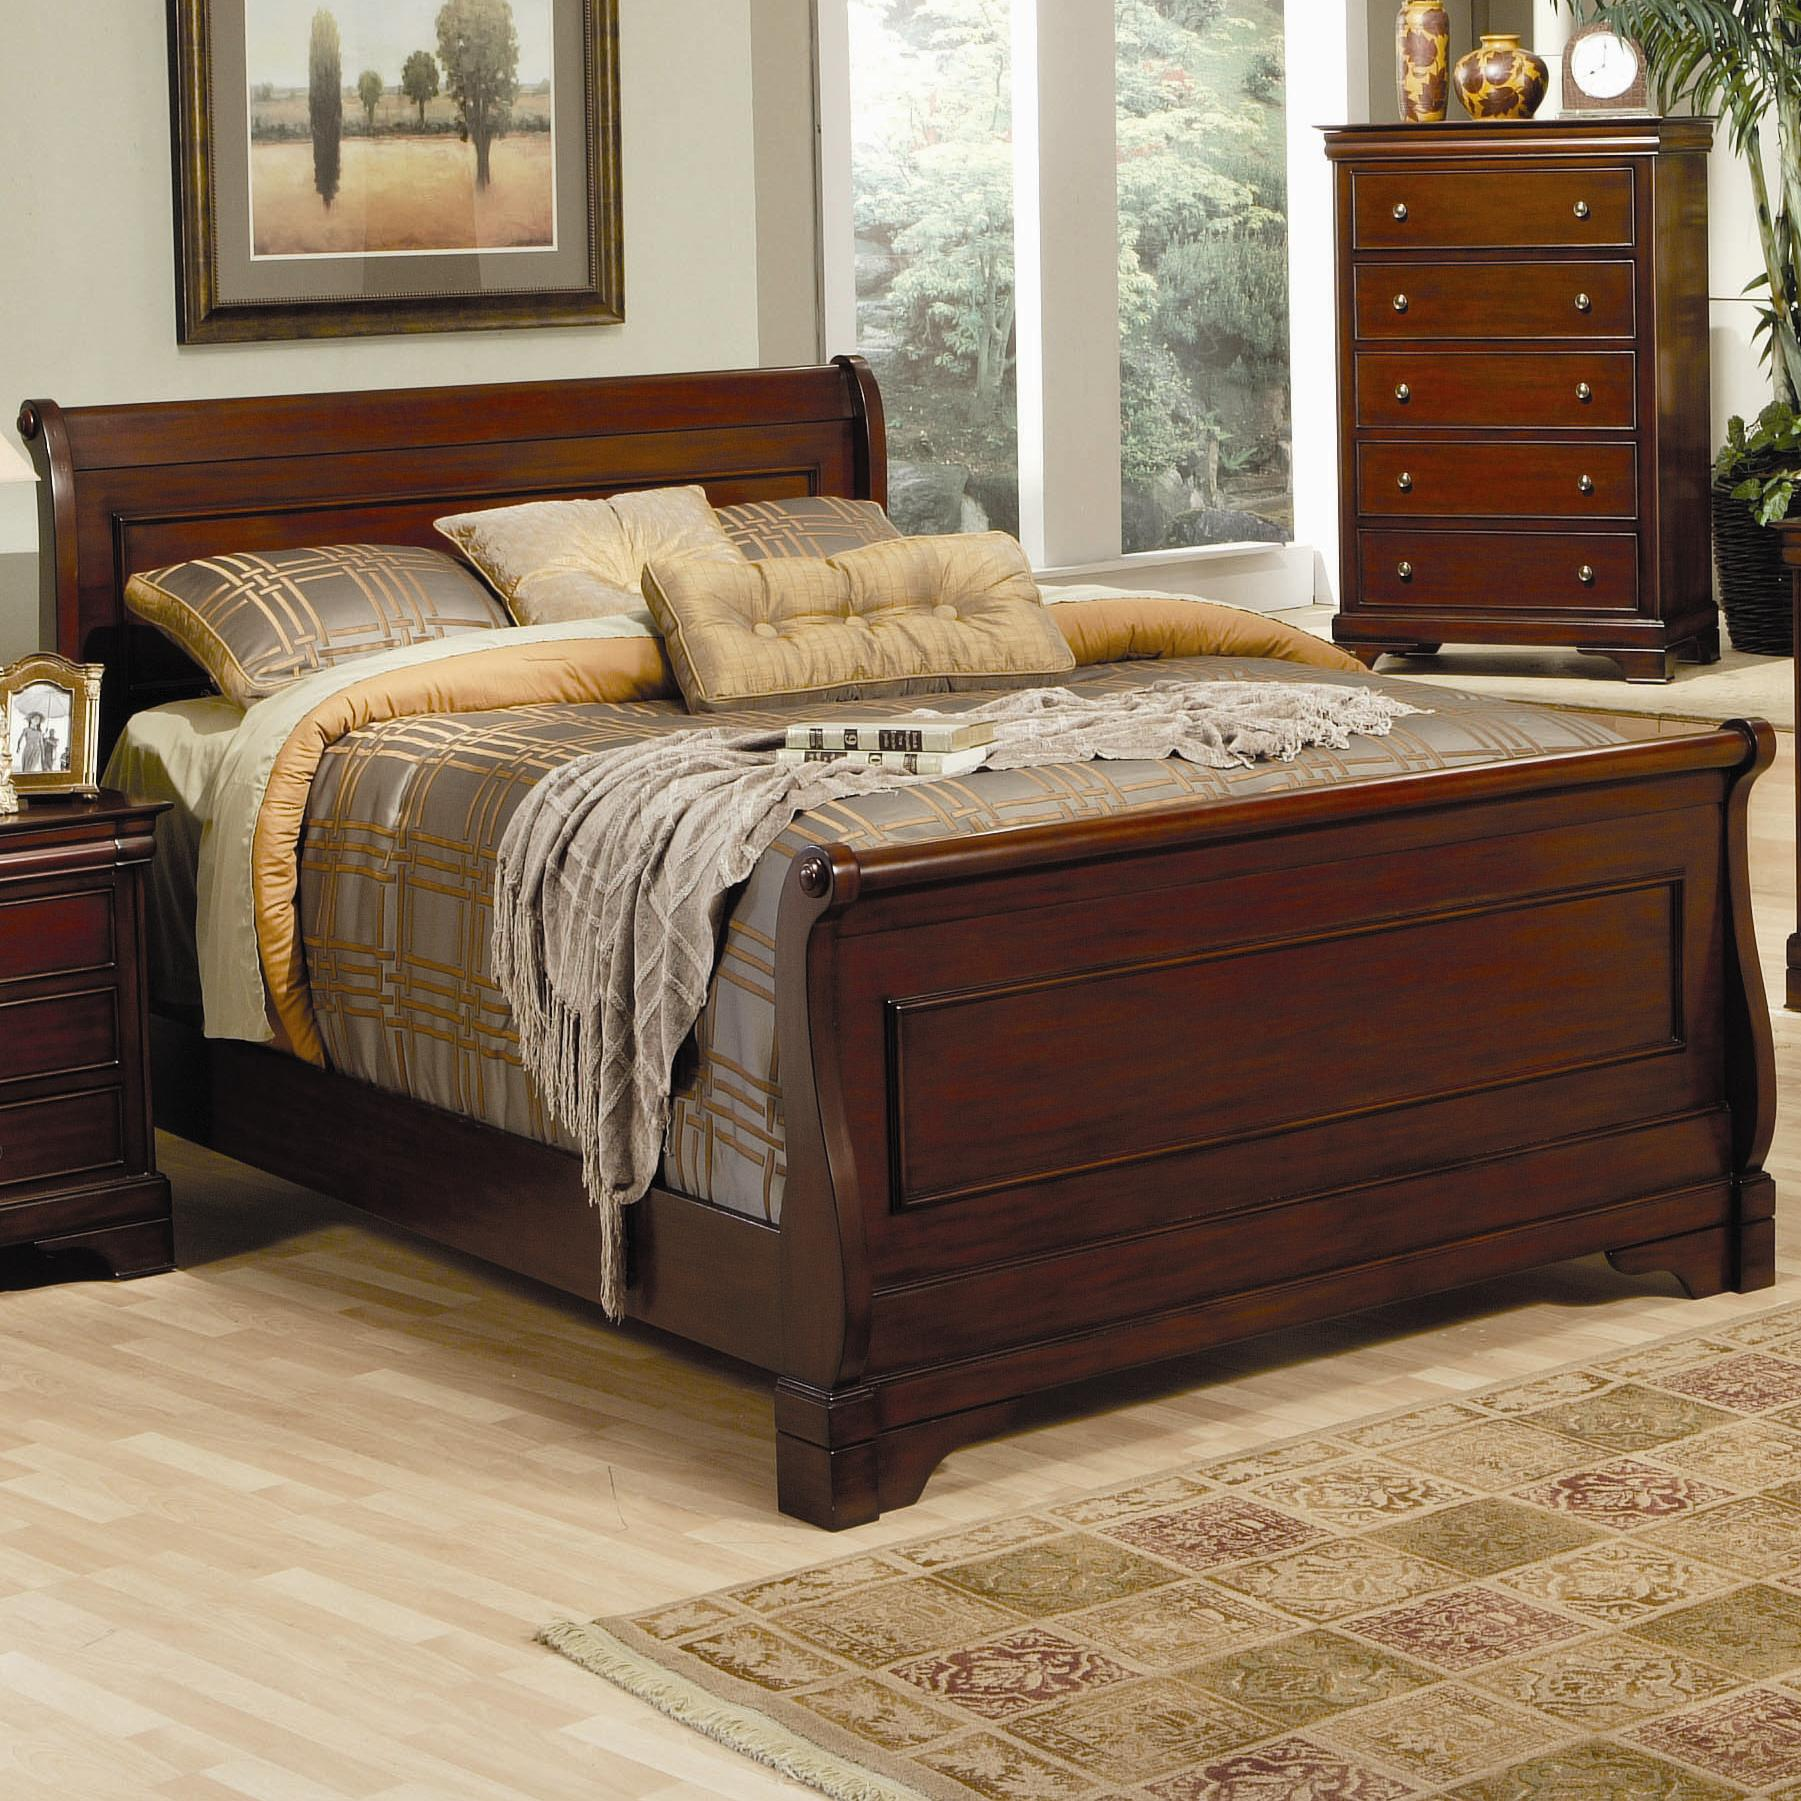 Coaster Versailles Queen Sleigh Bed - Item Number: 201481Q